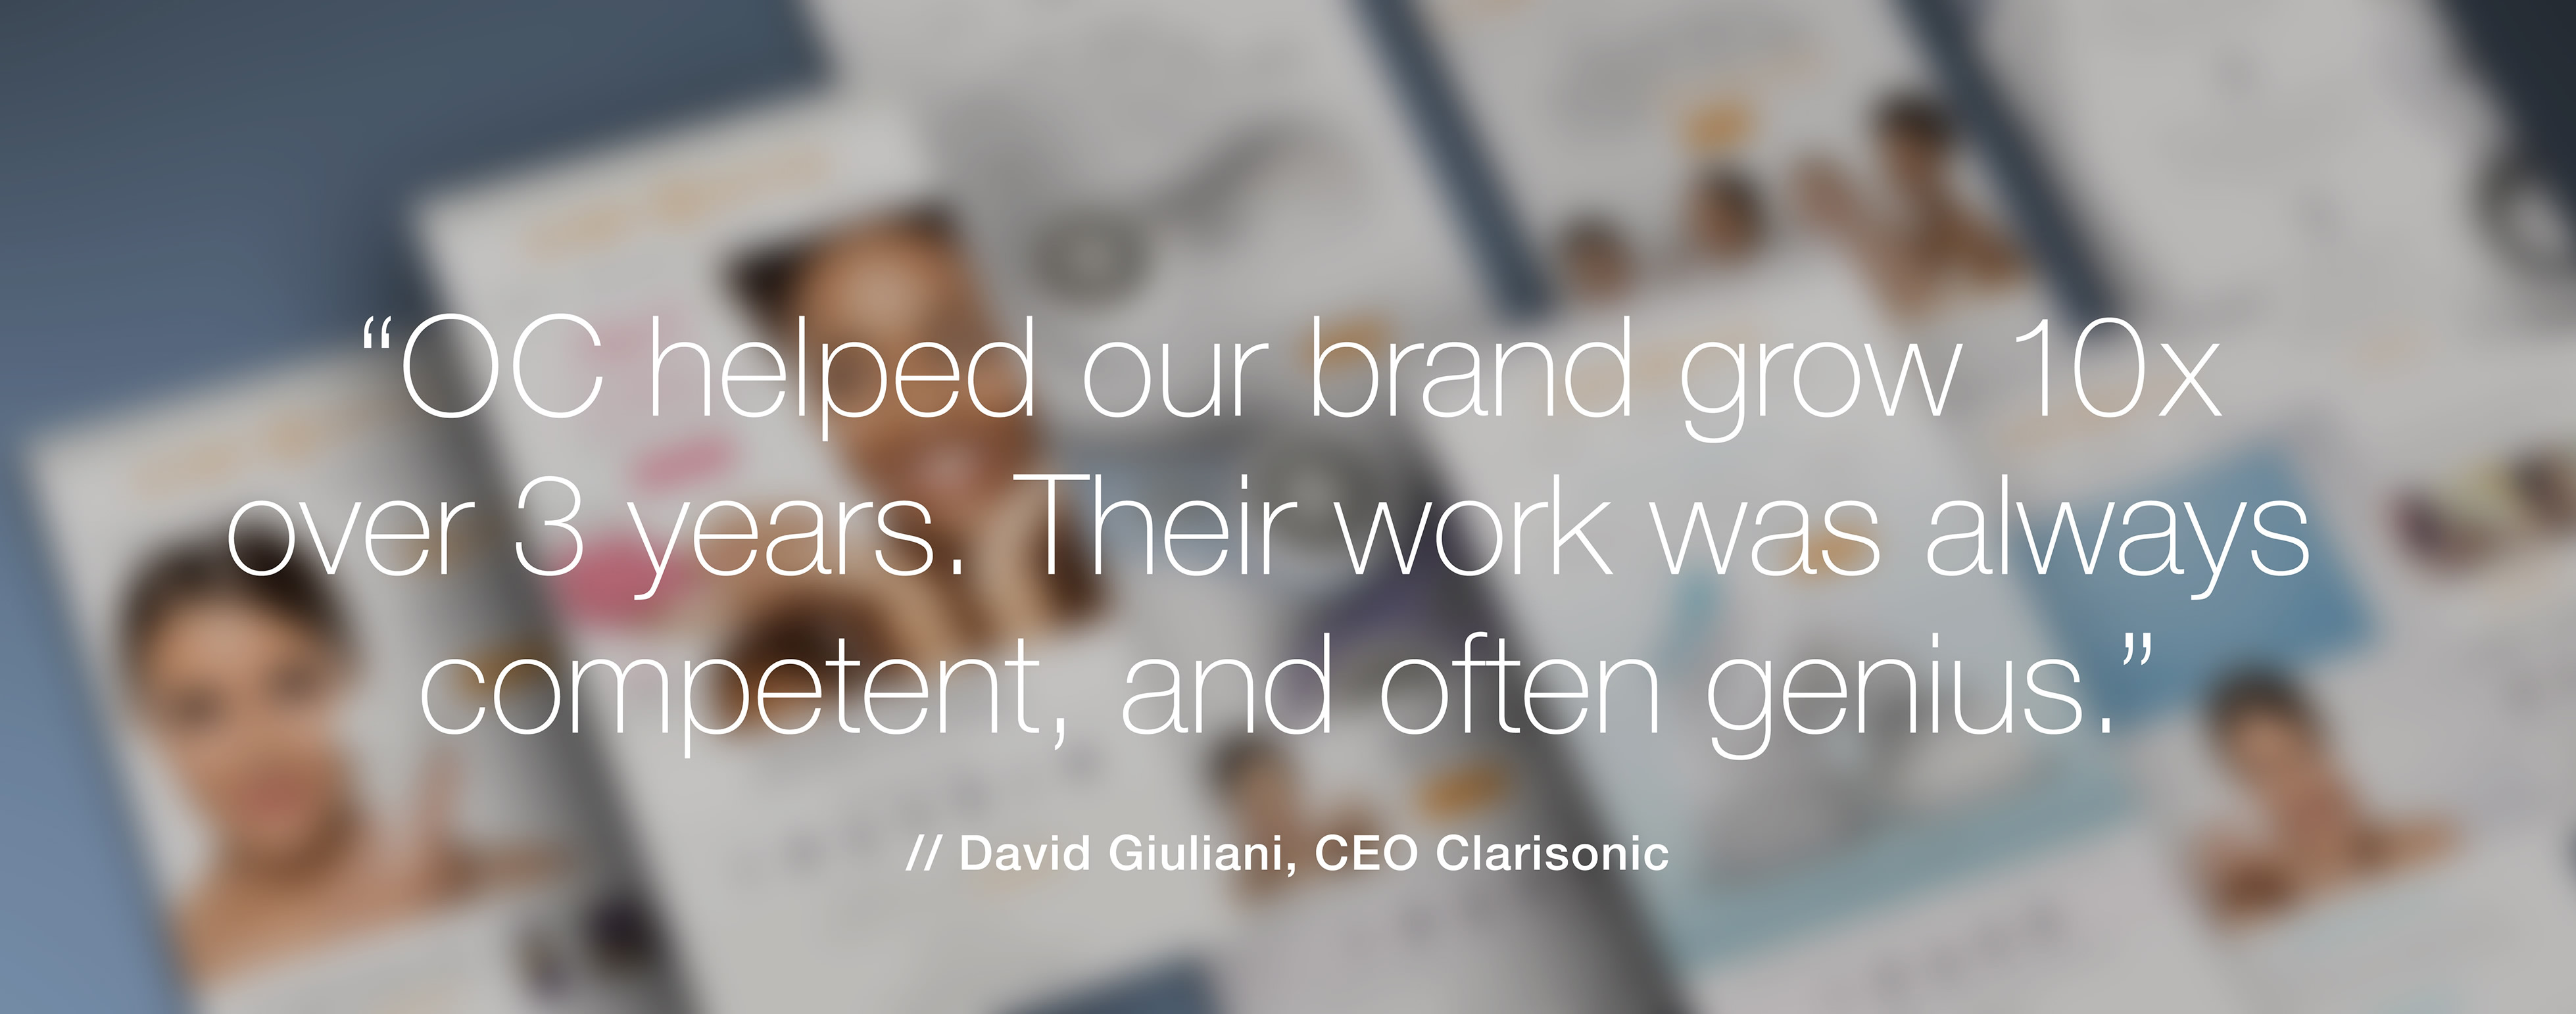 Clarisonic CEO David Giuliani said of O'Berry Collaborative: OC helped our brand grow 10x over 3 years. Their work was always competent, and often genius.